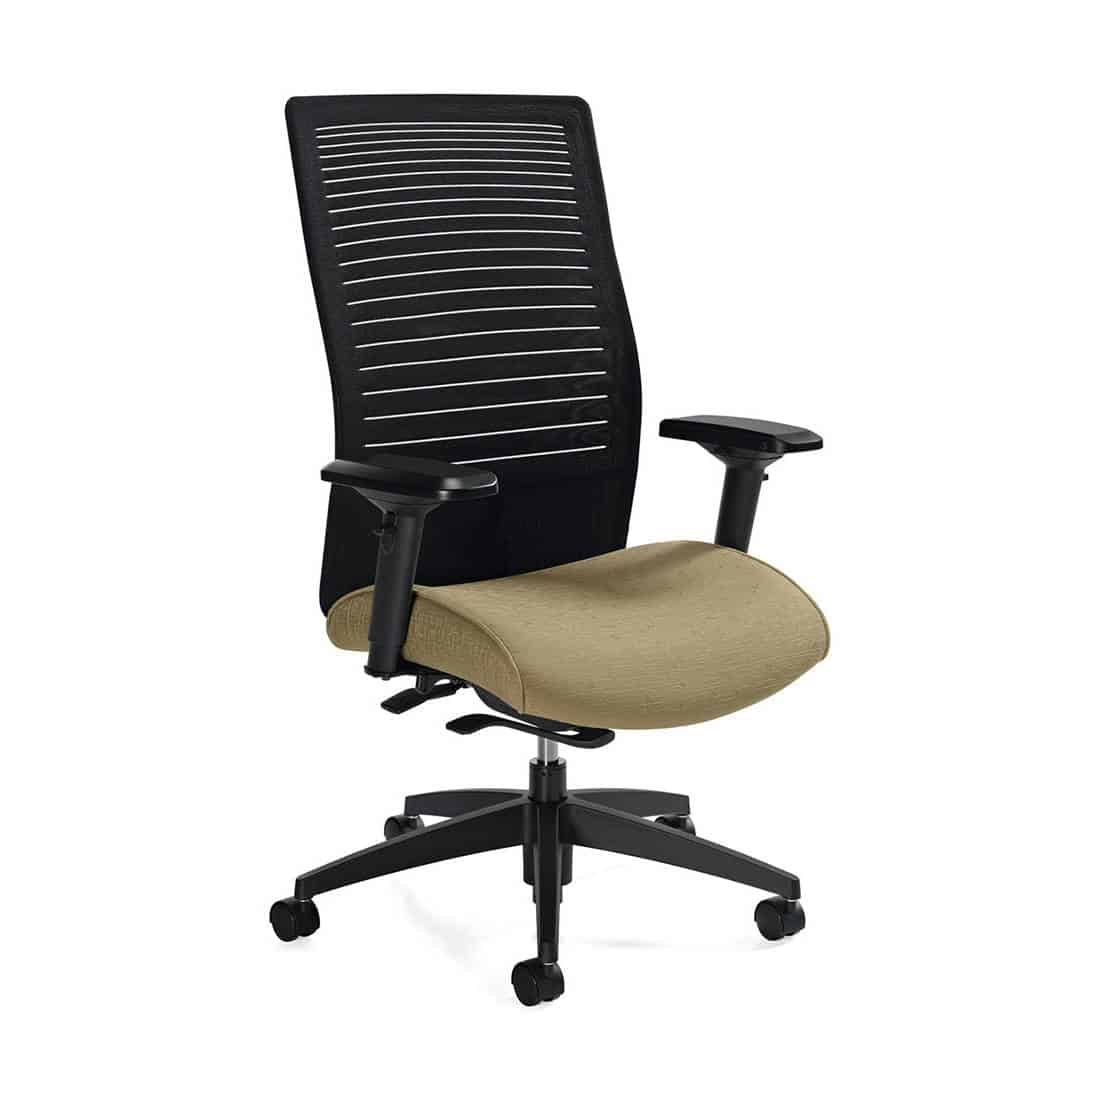 Global Loover Desk Chair Joyce Contract Interiors